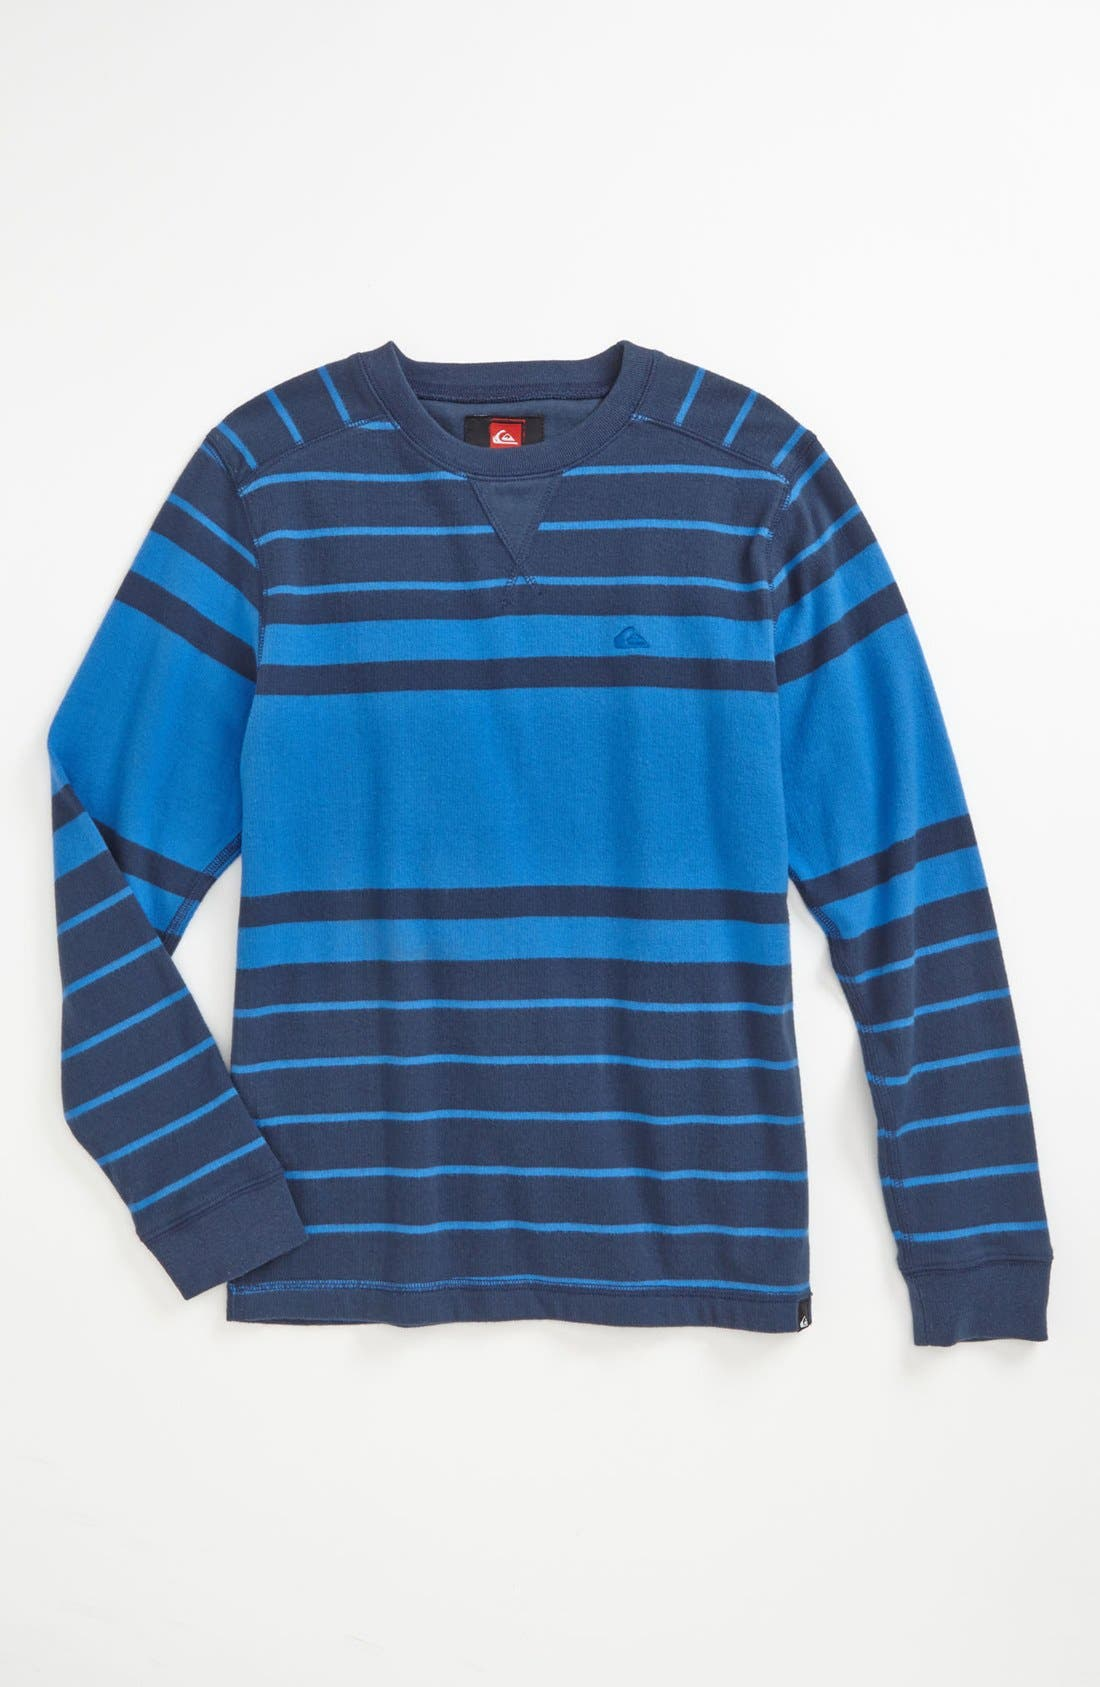 Alternate Image 1 Selected - Quiksilver 'Snit' Long Sleeve T-Shirt (Little Boys)